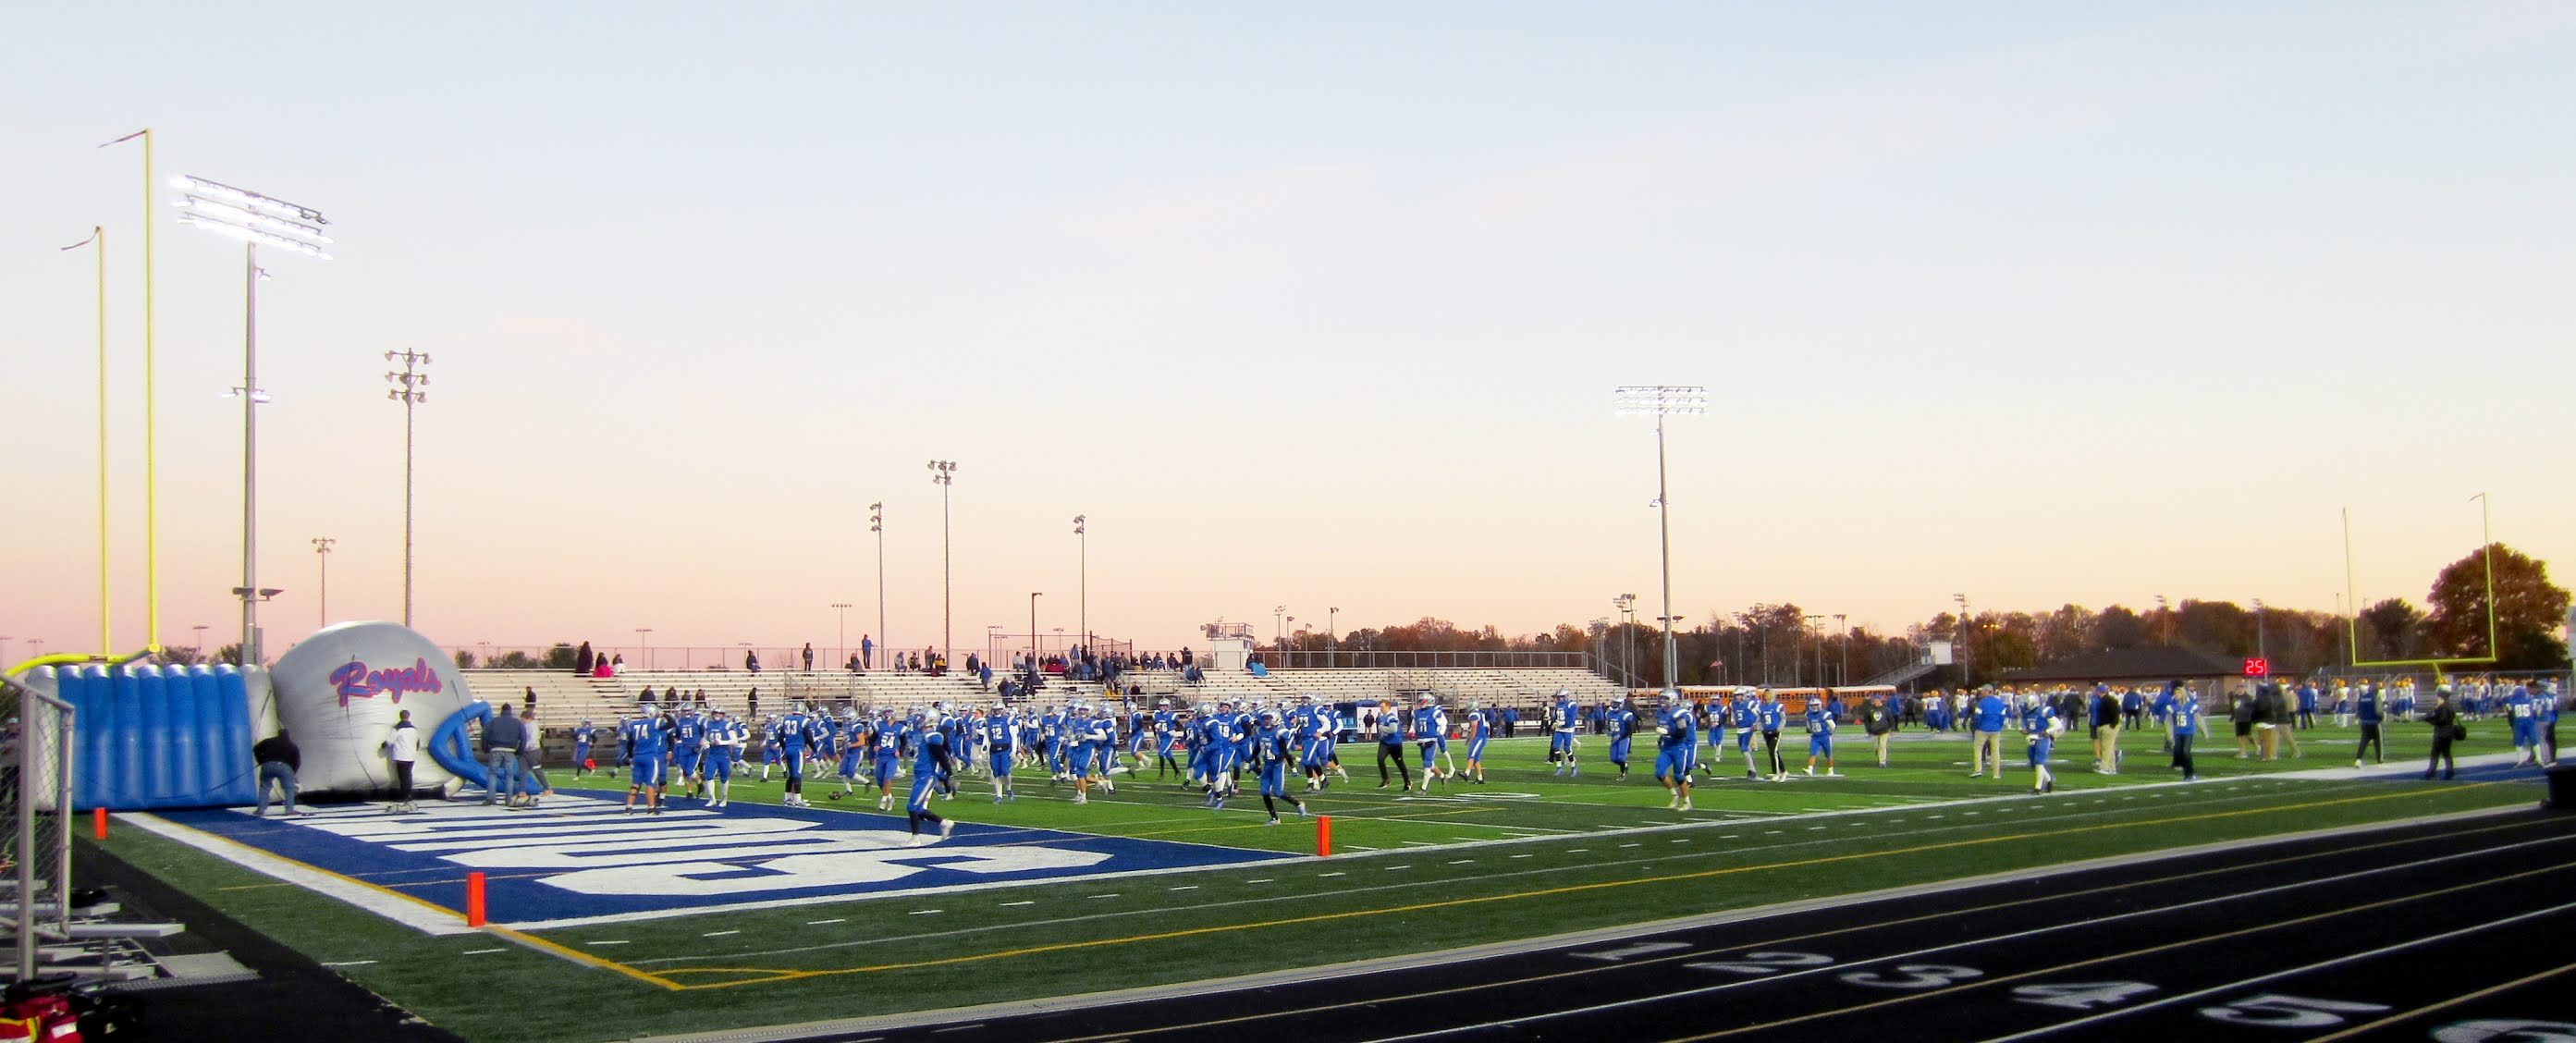 Hamilton Southeastern Royals players warm up on the field